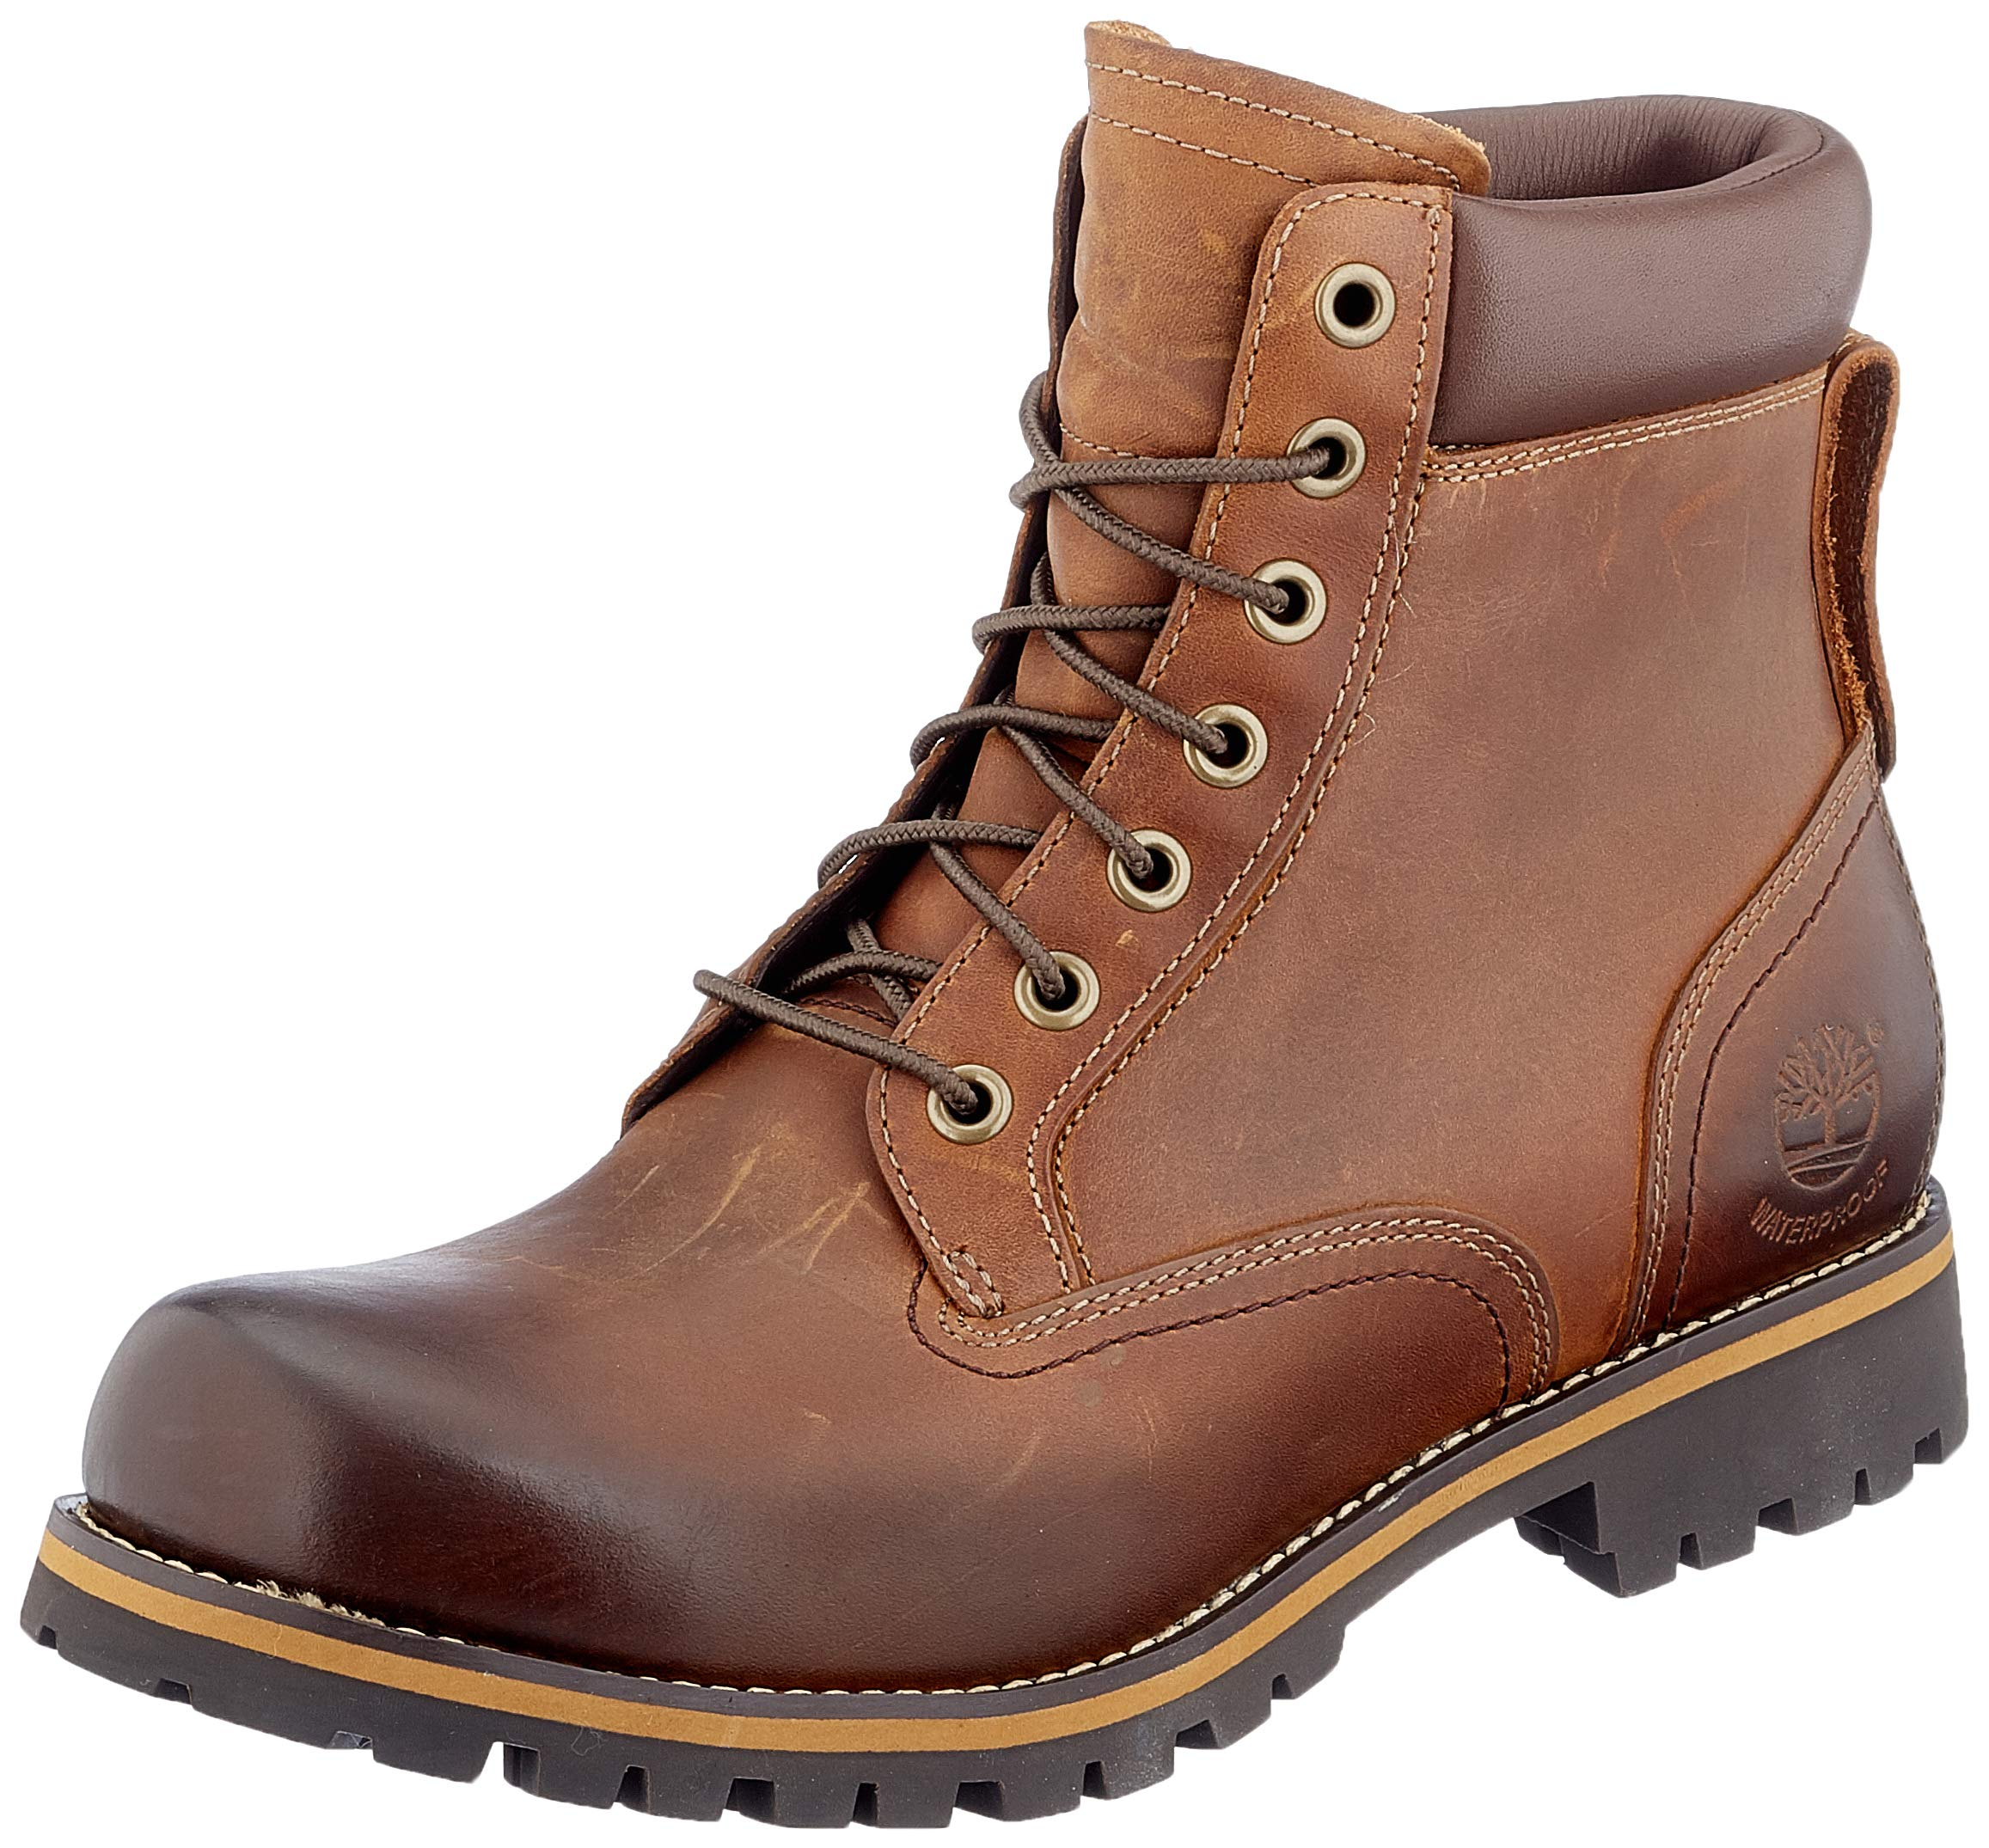 Timberland Earthkeepers Rugged Medium brown